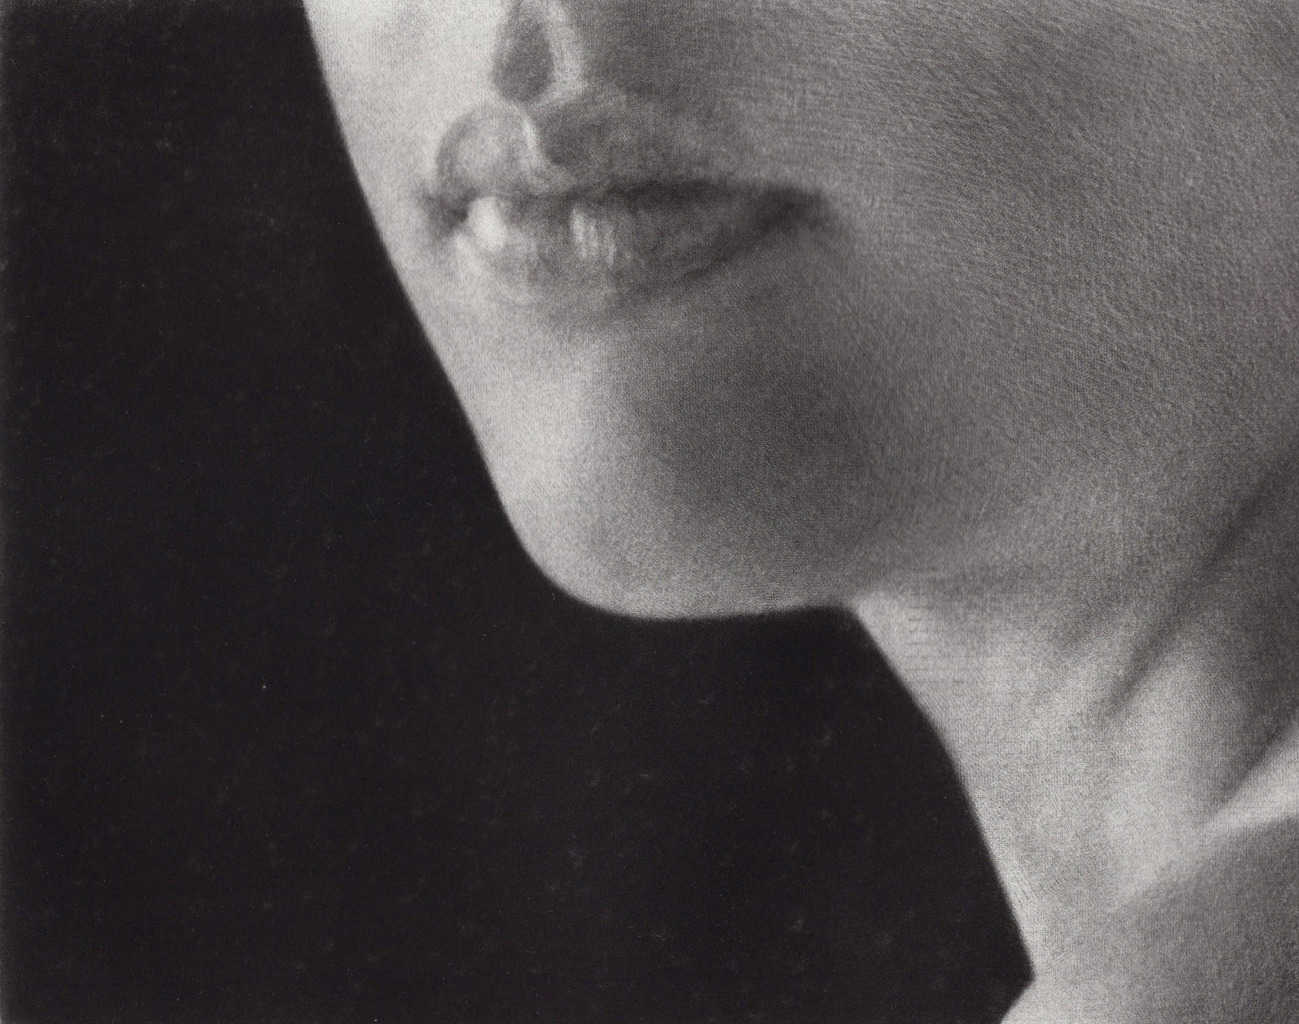 """""""Words"""" 2 - Fragment of a woman's face in three quarters turn on the black background. Original print mezzotint by painter-printmaker Marina Kim., recepient of the IPCNY printmaking award"""